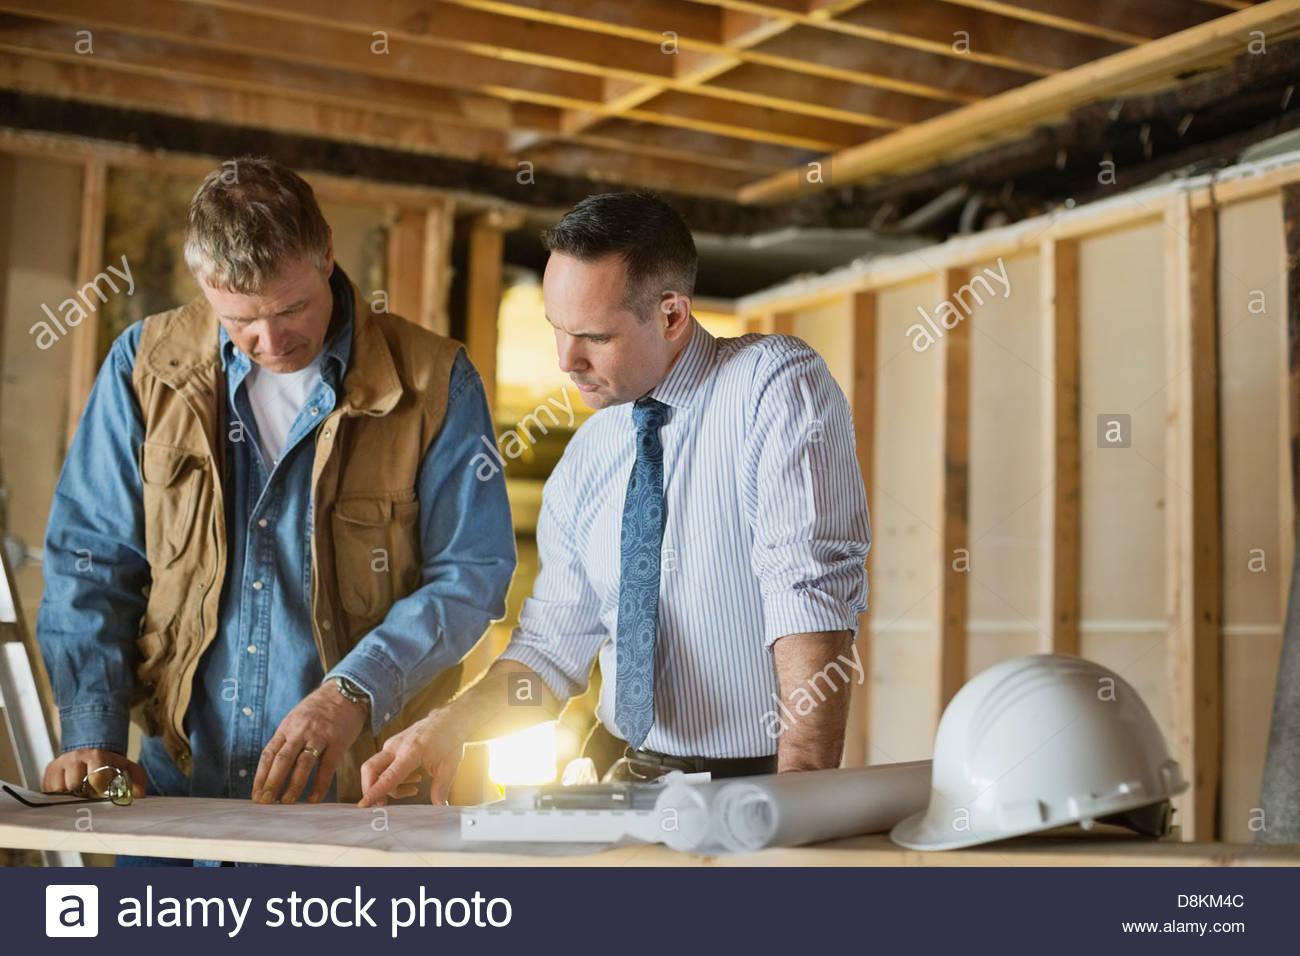 Male architect and foreman discussing blueprint at construction site - Stock Image